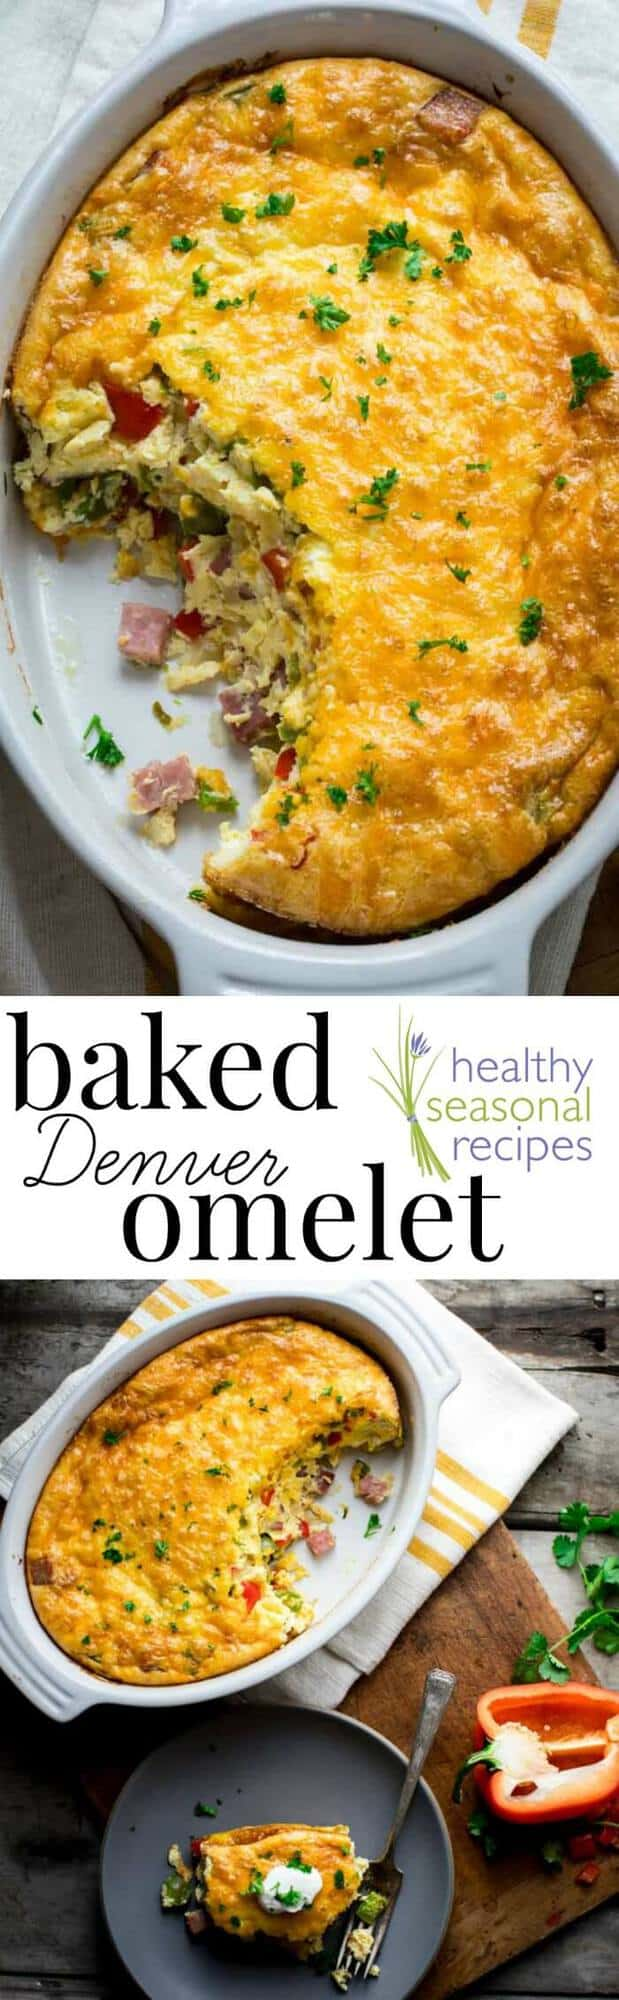 Oven Omelet Recipe Food Network